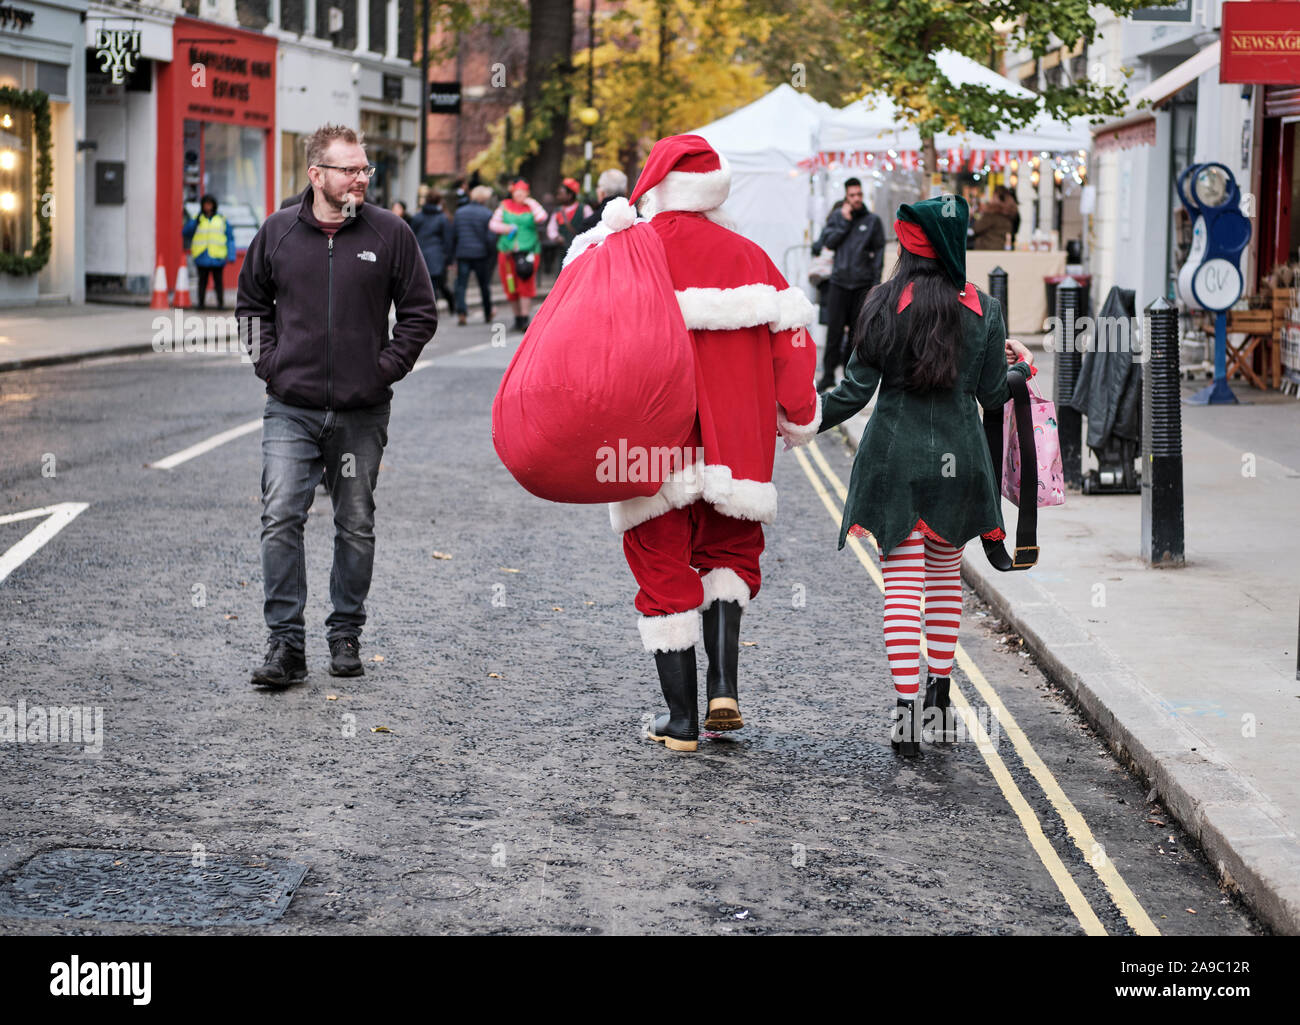 santa-claus-and-an-elf-walking-away-hand-in-hand-getting-look-from-passer-by-on-london-street-2A9C12R.jpg